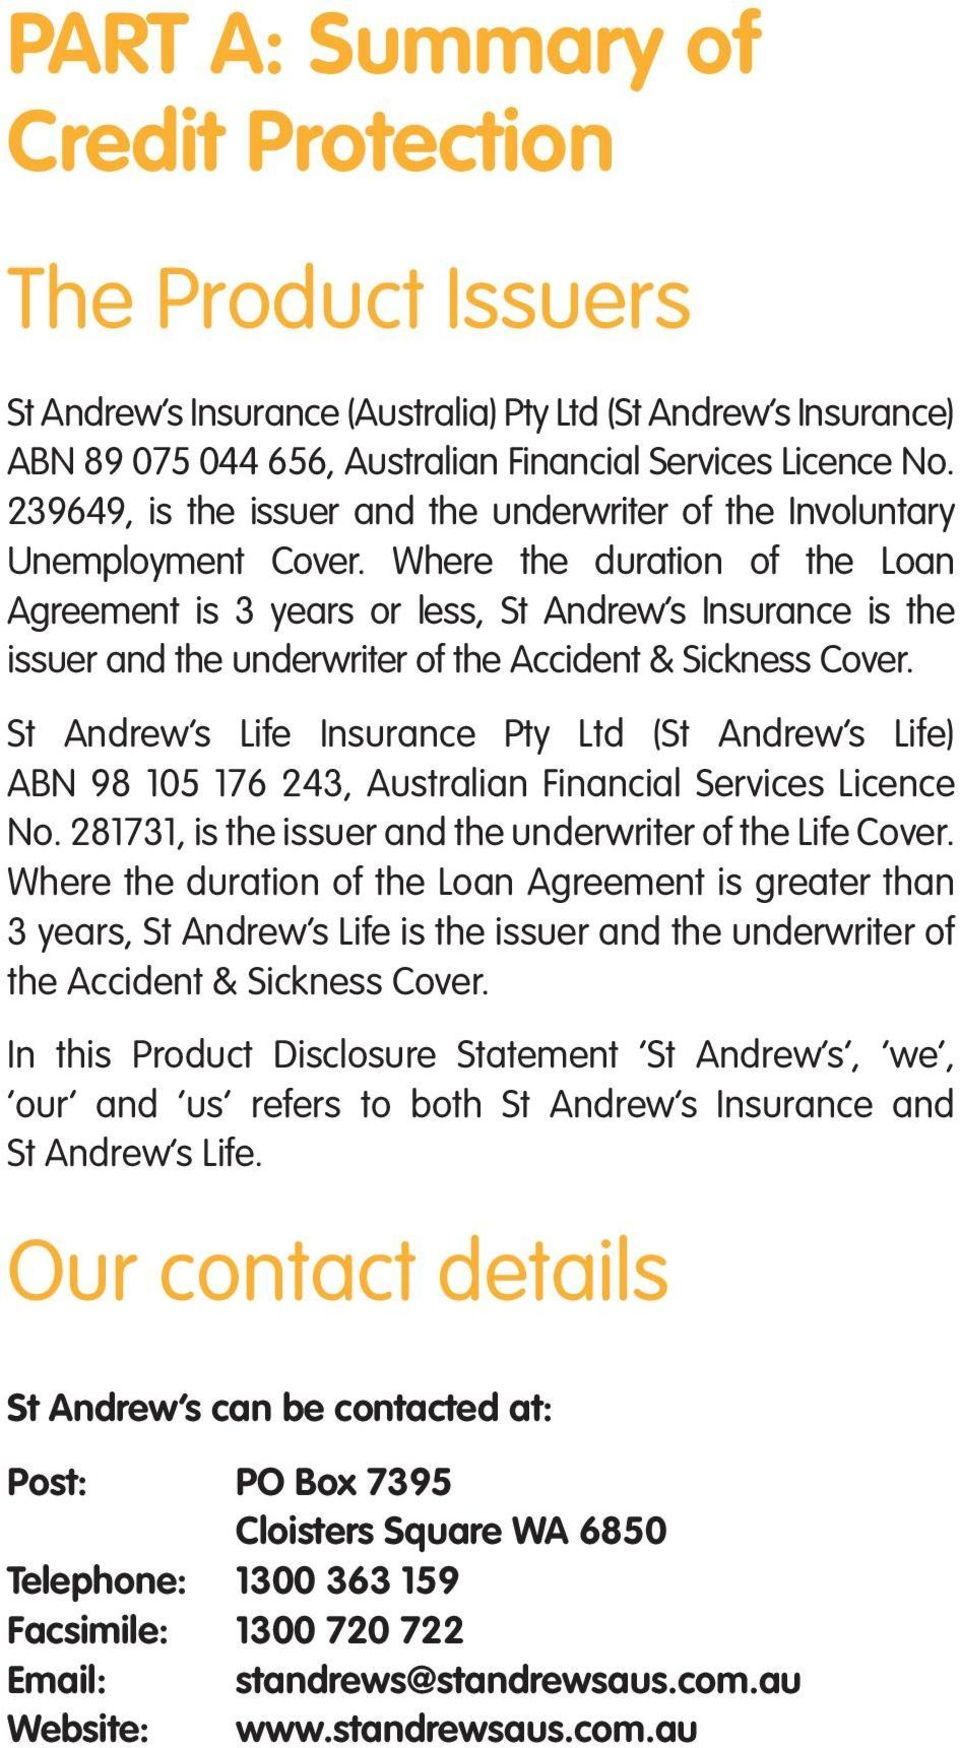 Where the duration of the Loan Agreement is 3 years or less, St Andrew s Insurance is the issuer and the underwriter of the Accident & Sickness Cover.